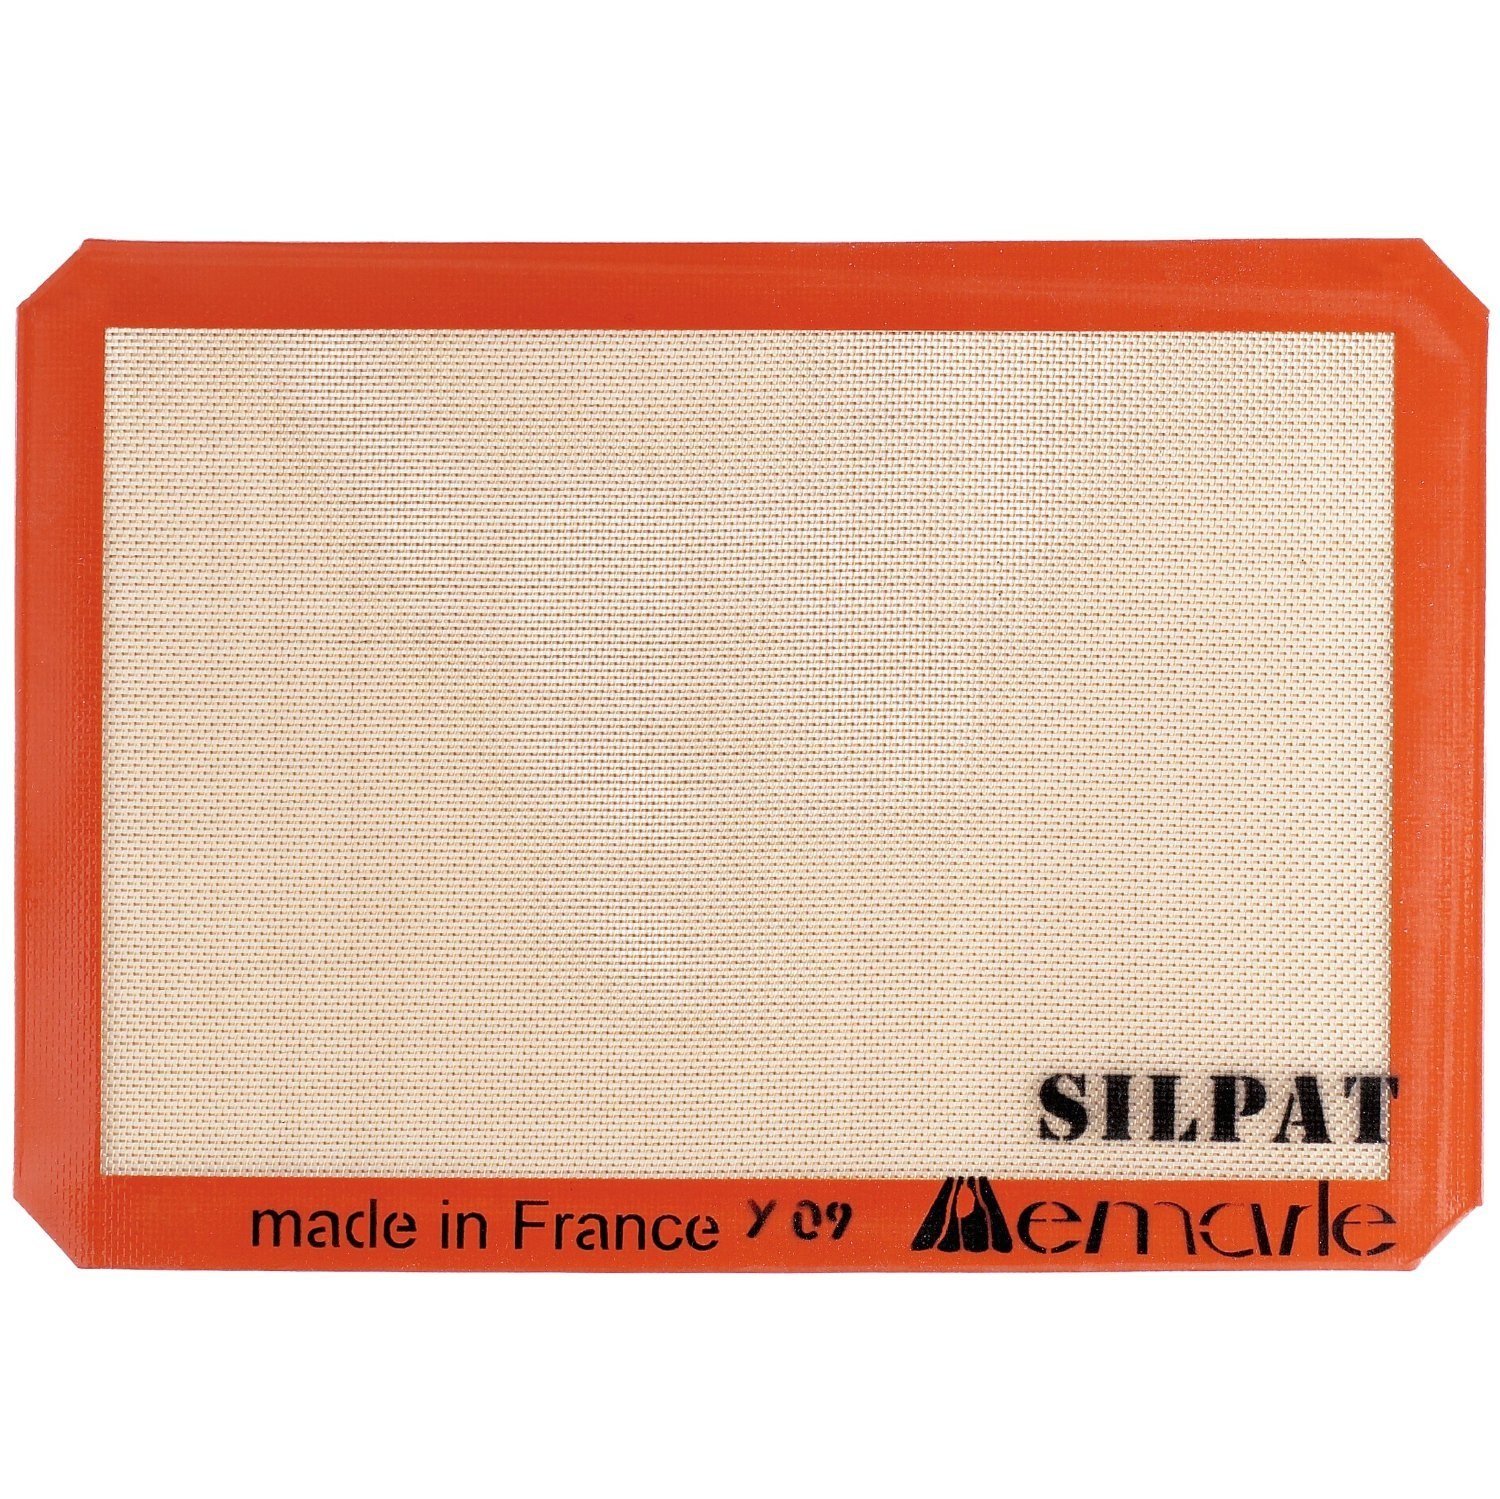 Silpat Non-Stick Silicone Baking Mat- Set of 2